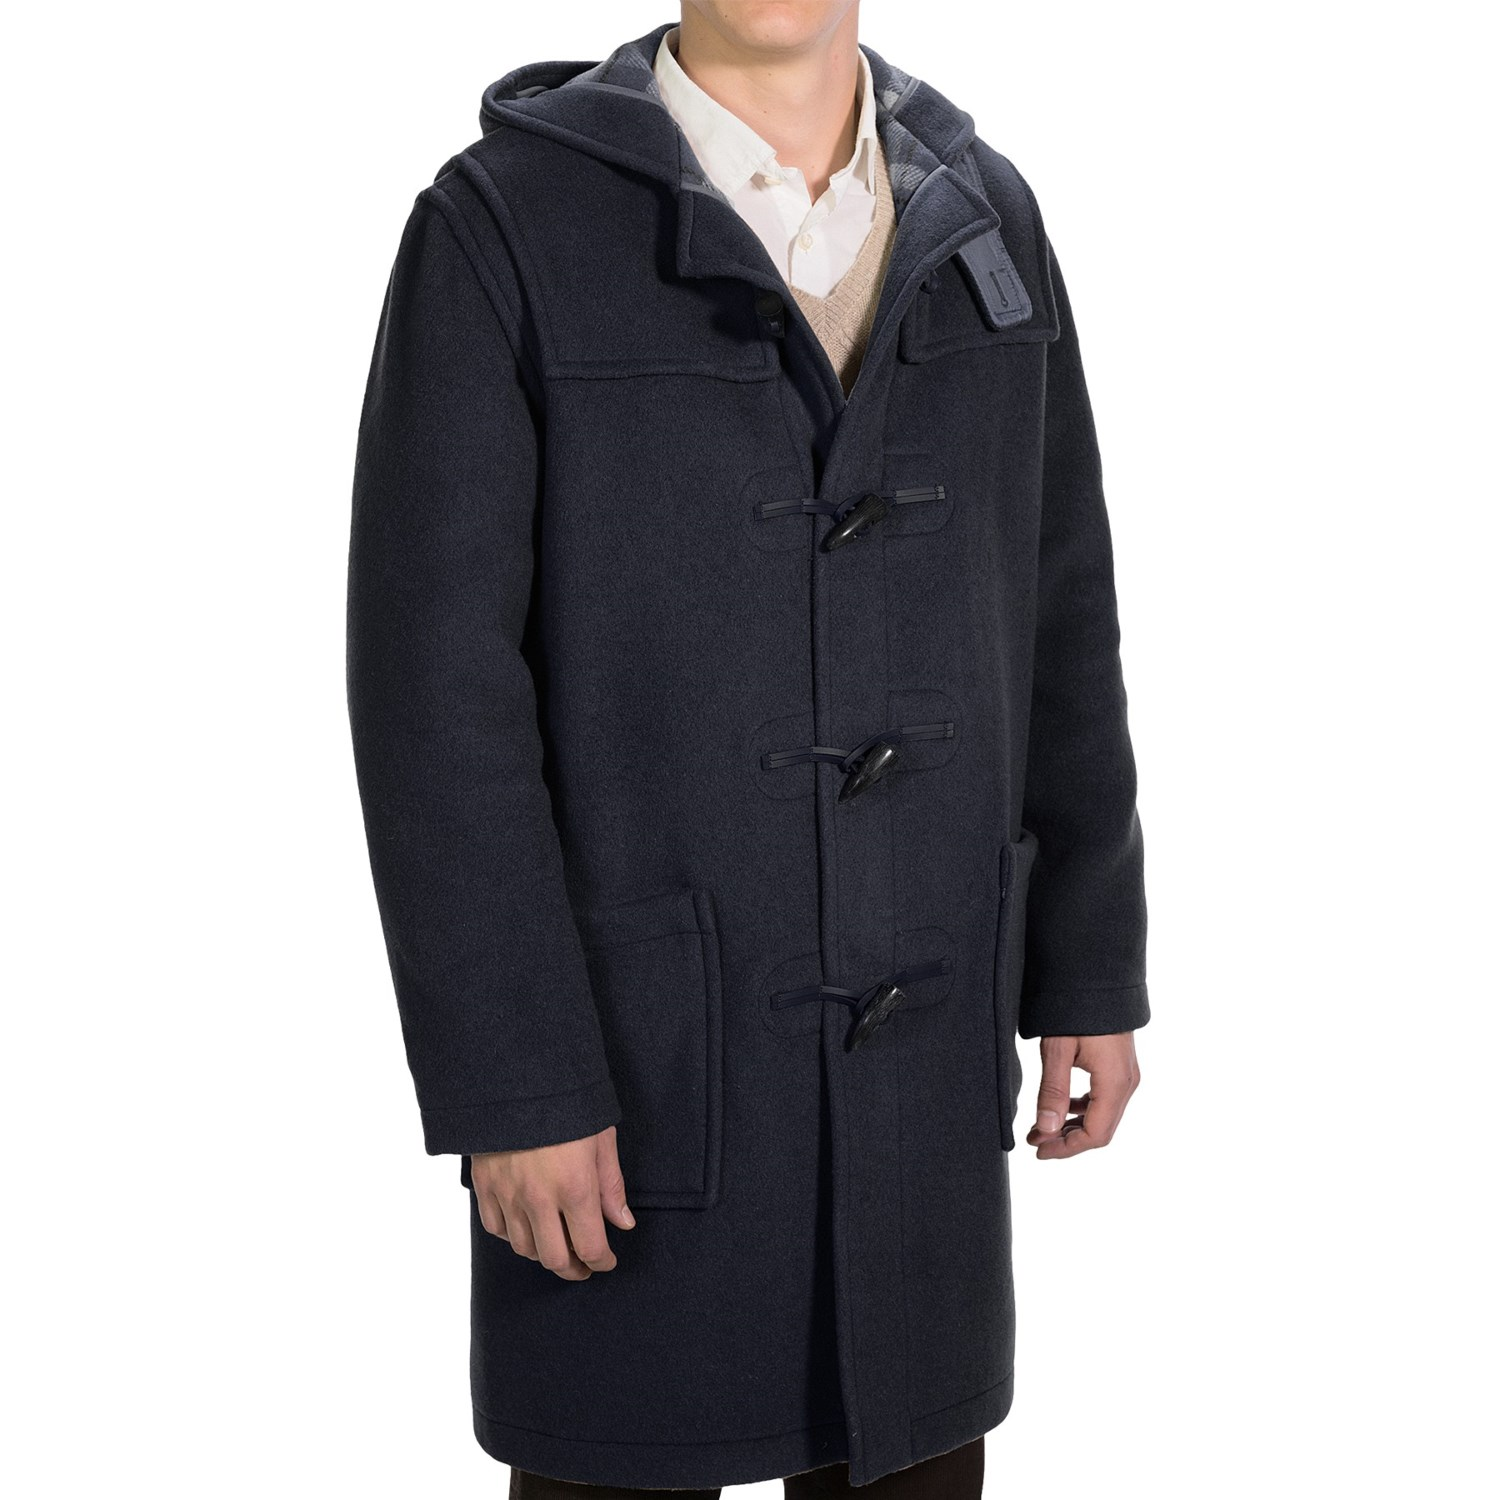 montgomery by john partridge duffle coat for men 7806k. Black Bedroom Furniture Sets. Home Design Ideas